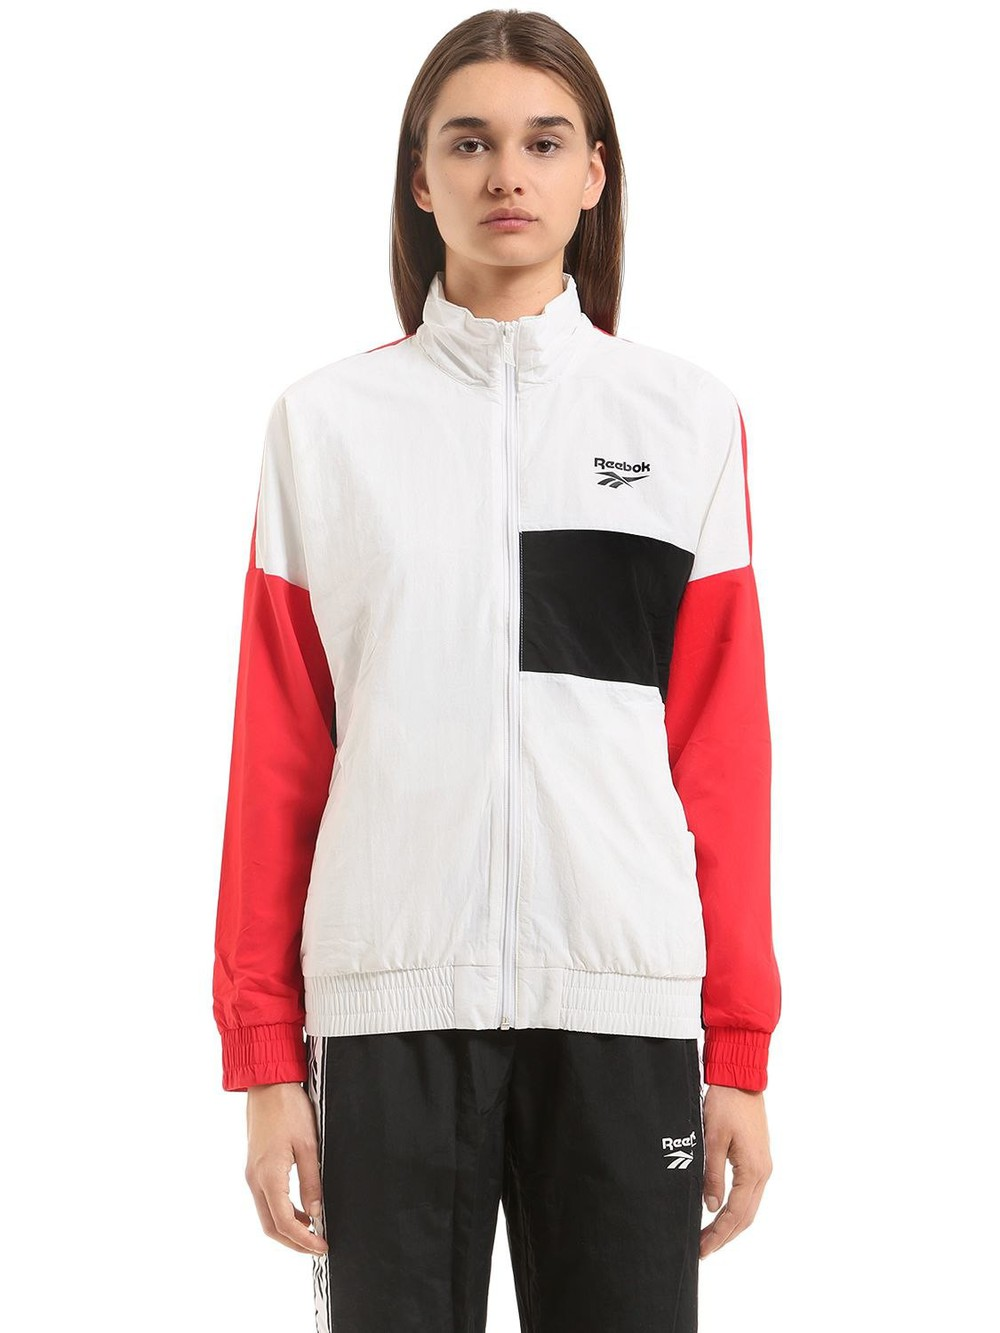 REEBOK CLASSICS Vector Color Blocked Track Jacket in red / white